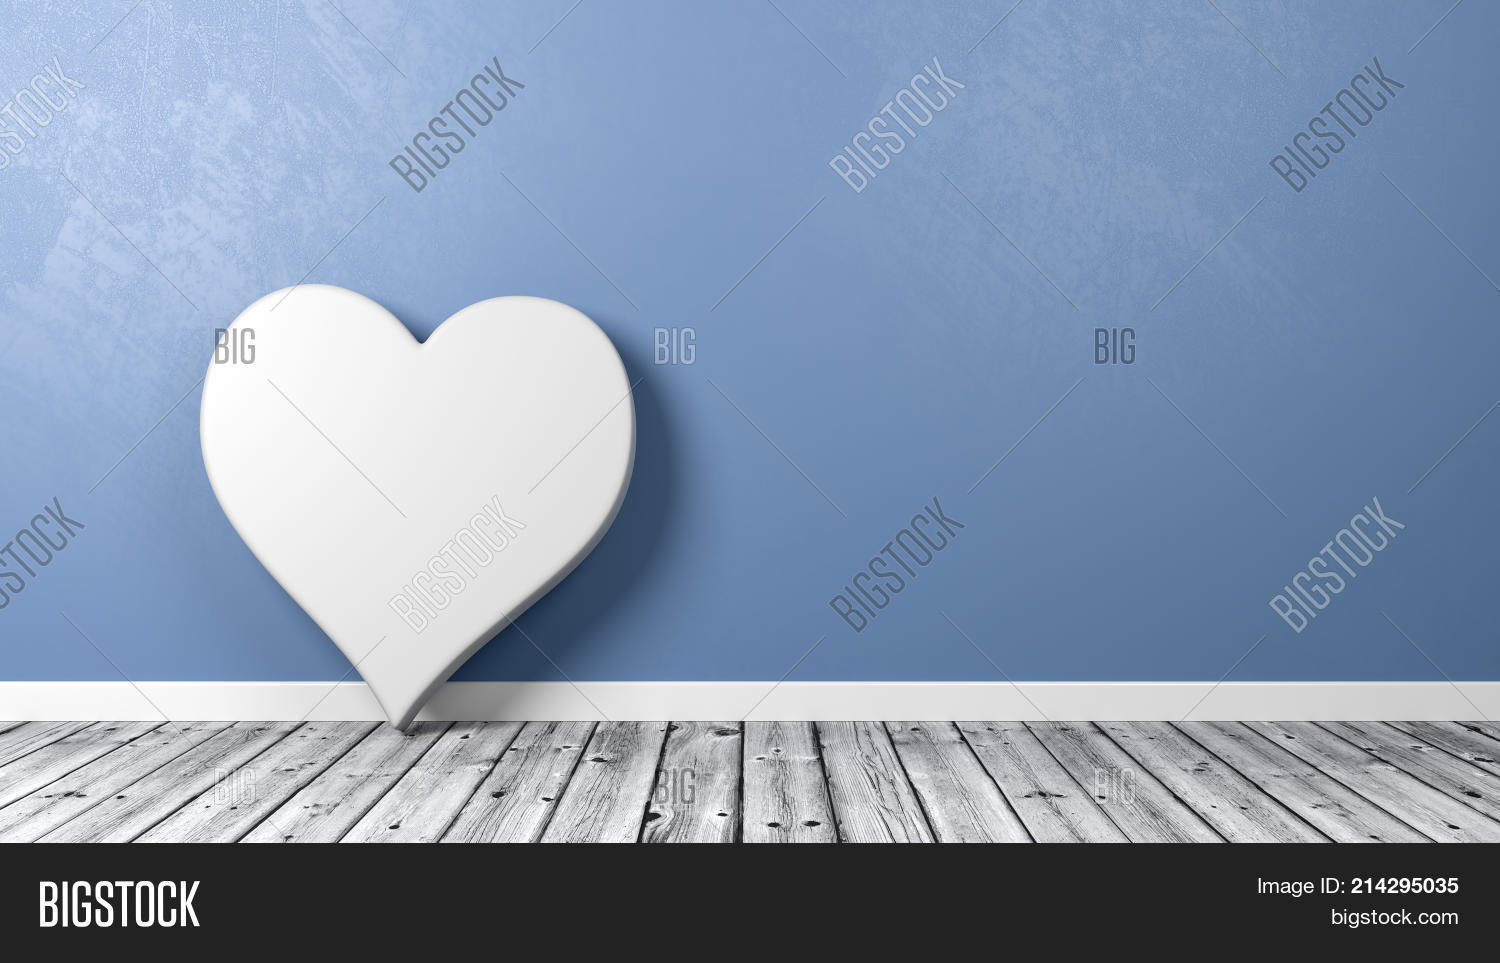 Heart Symbol On Wooden Image Photo Free Trial Bigstock